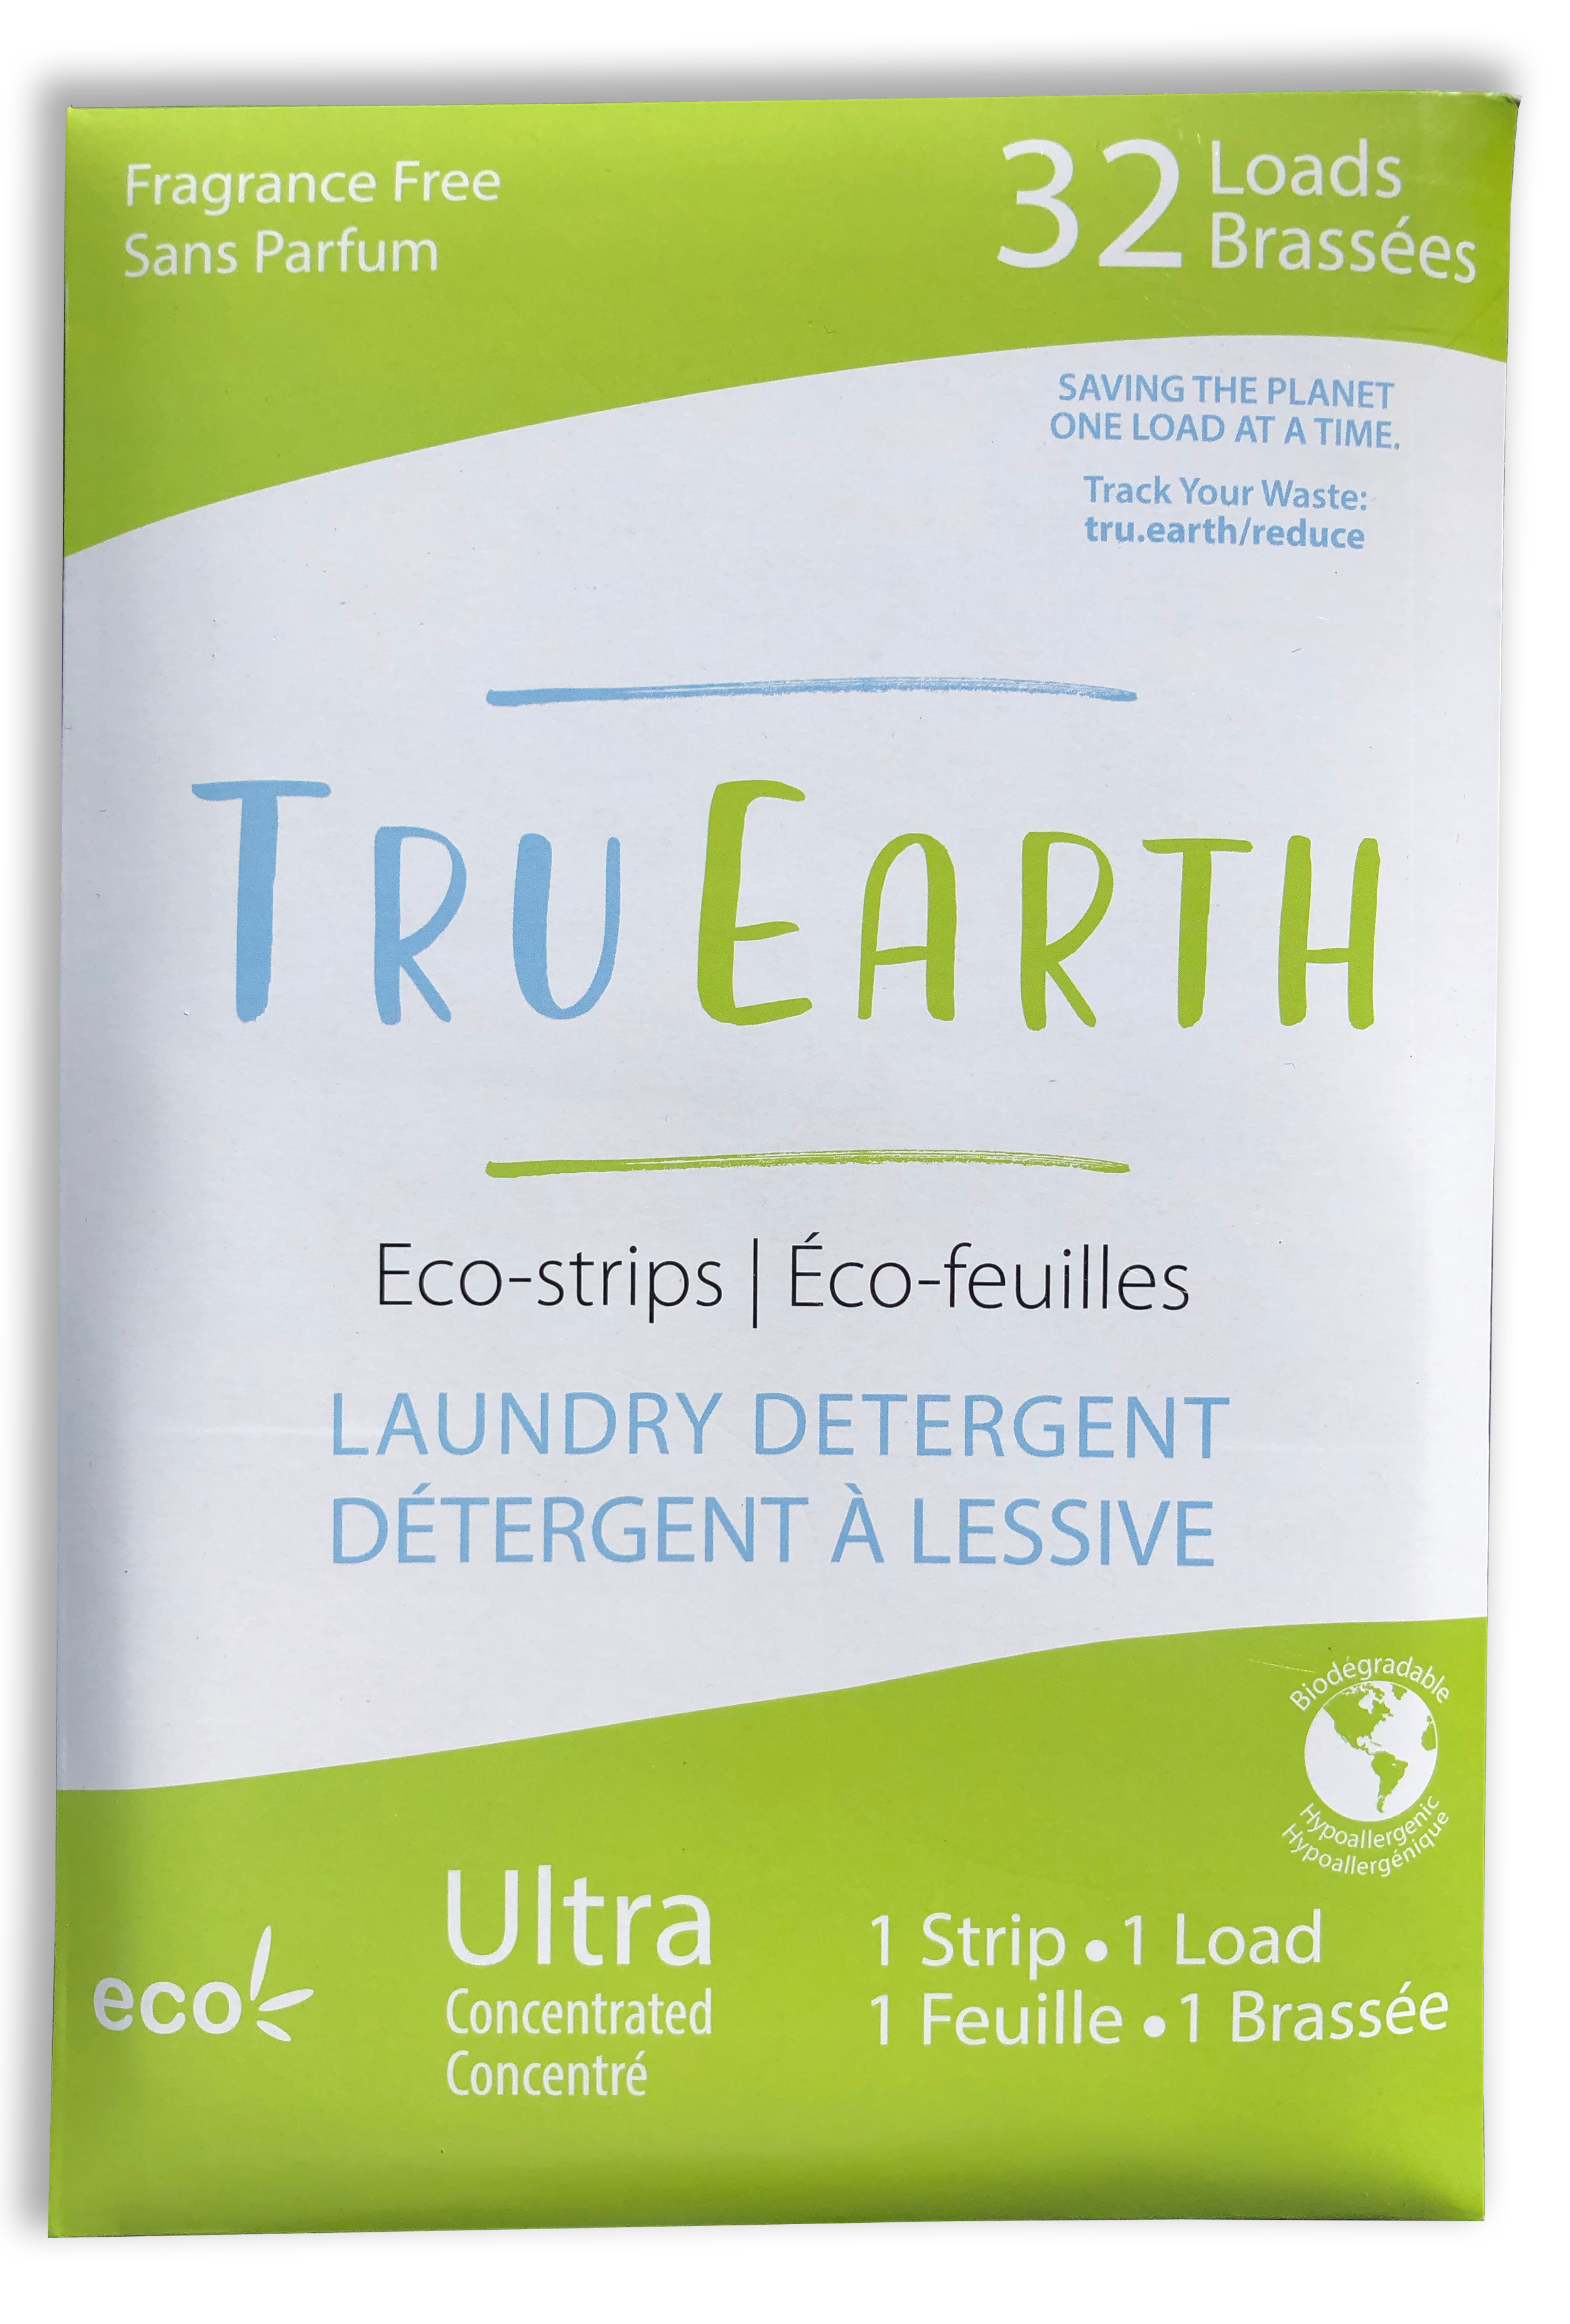 eco-strips-fragrance-free.png